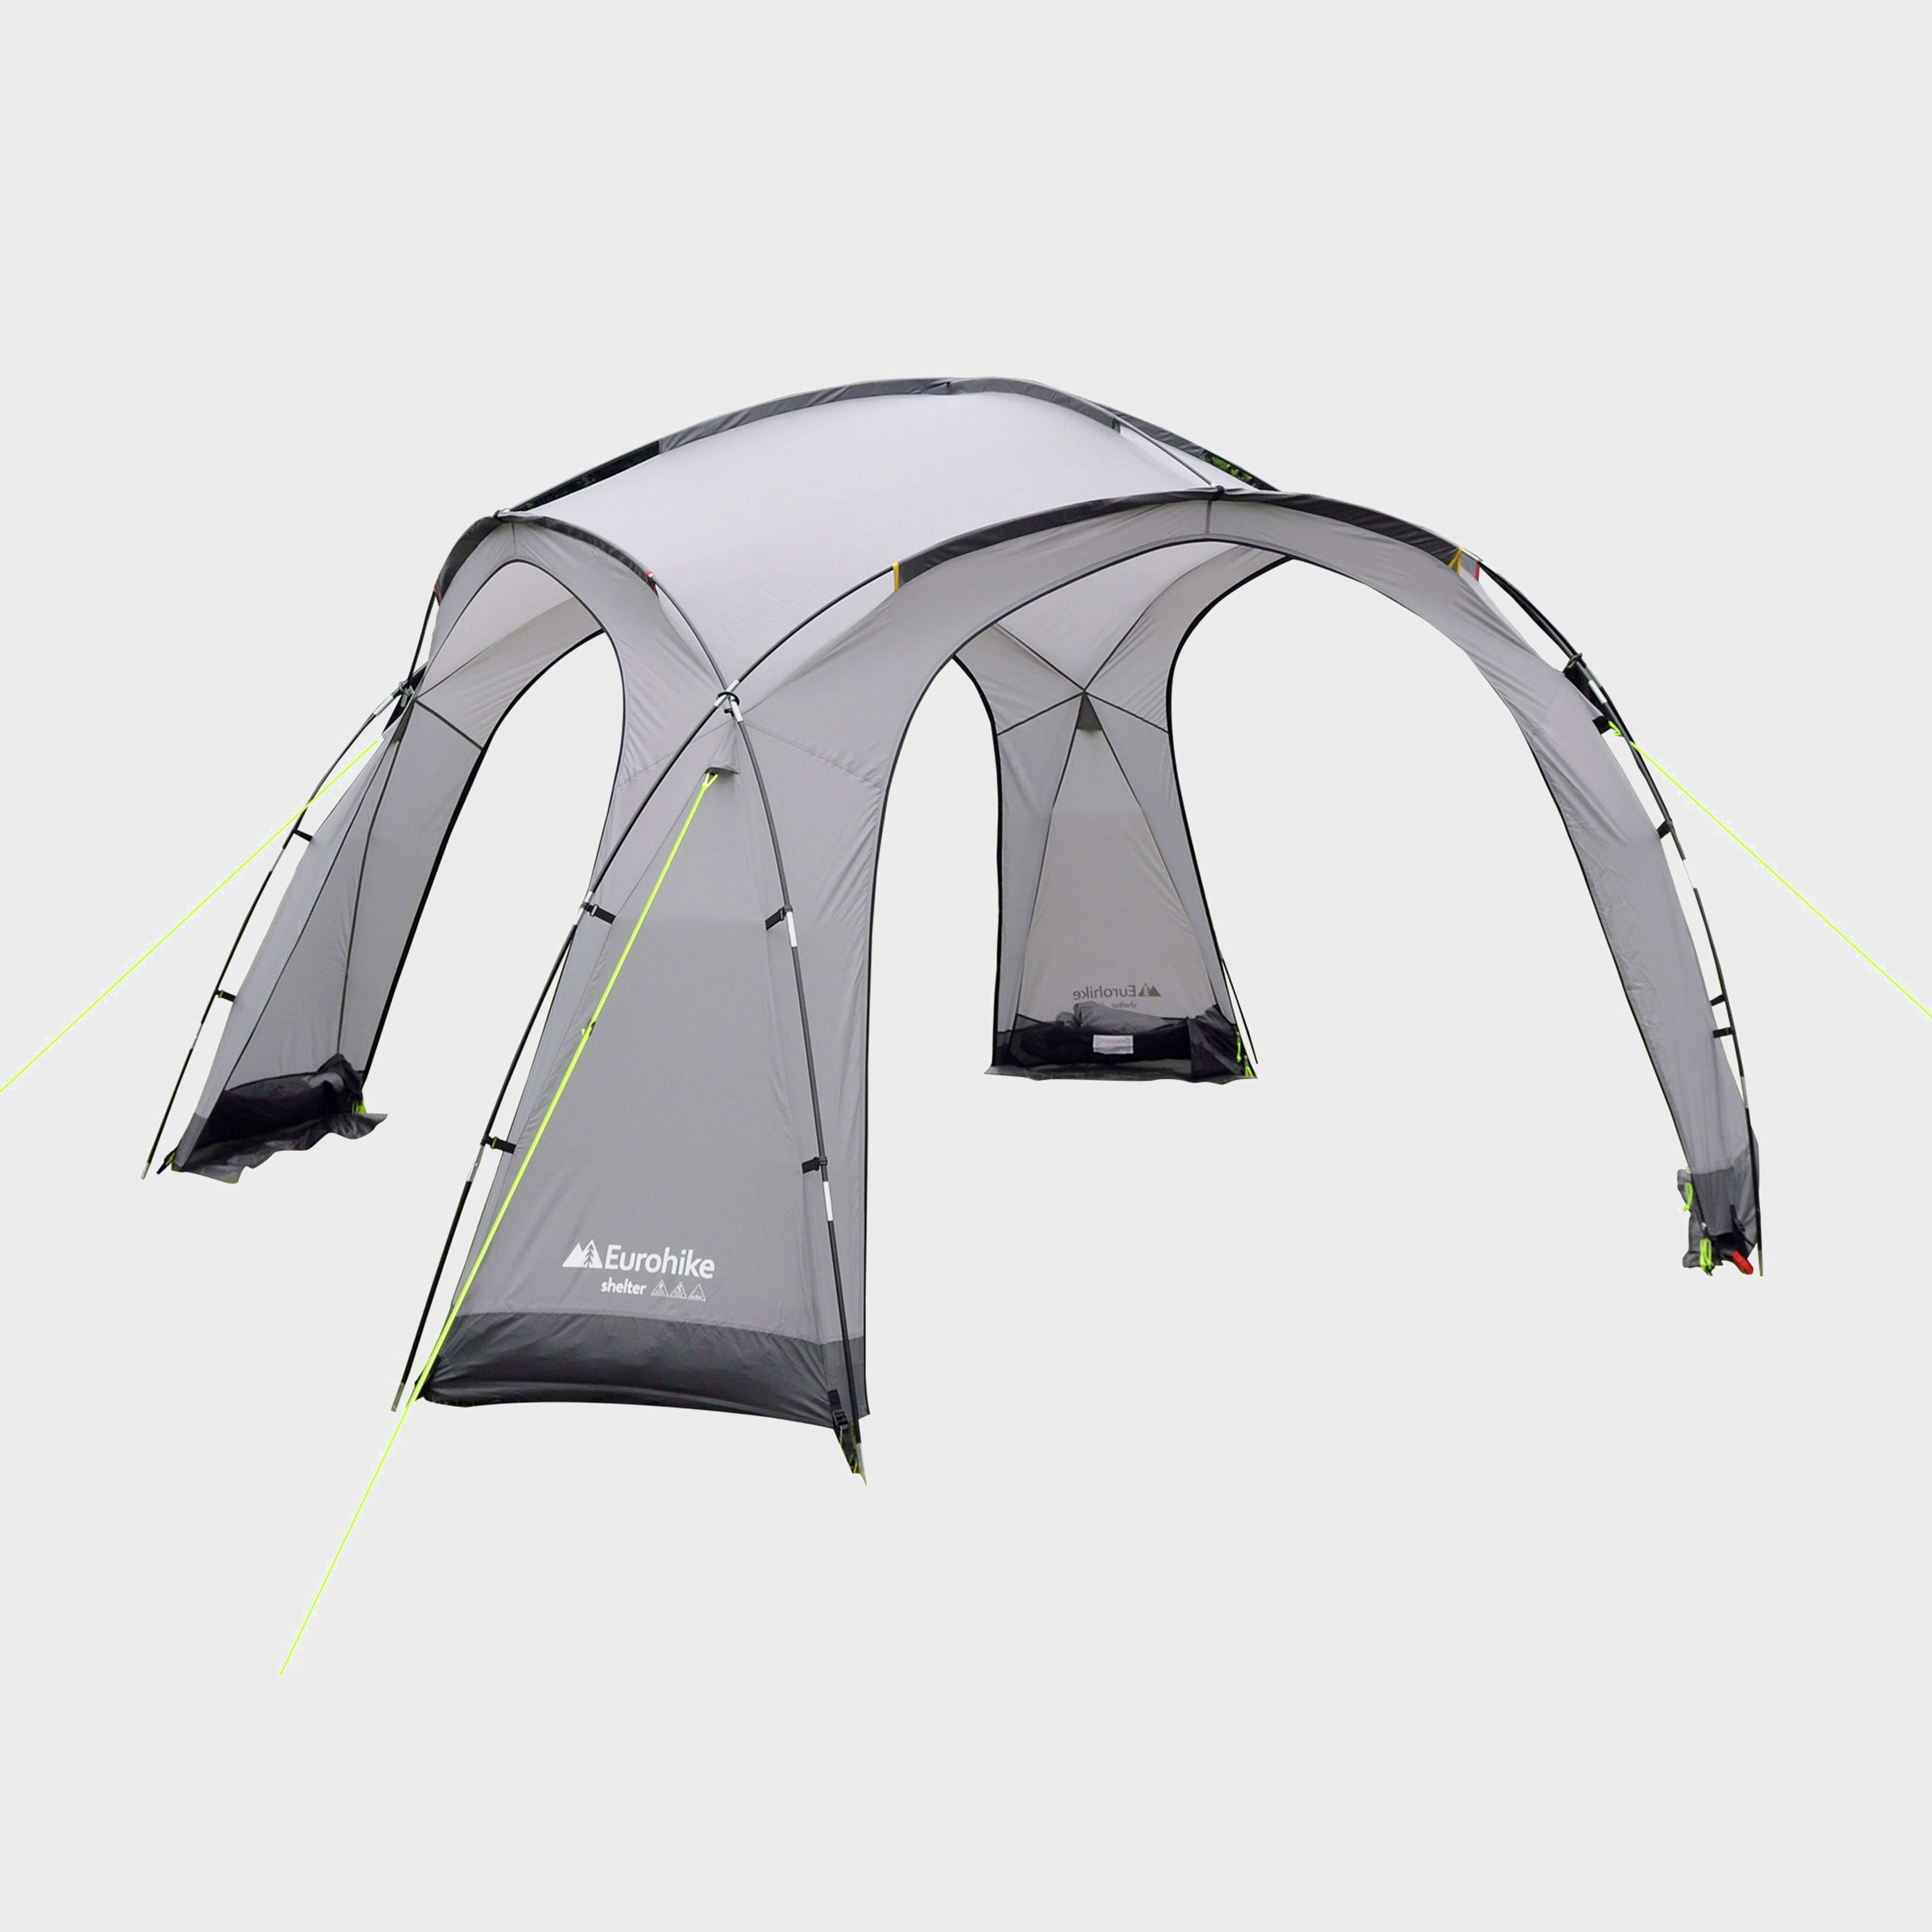 EUROHIKE Dome Shelter 12x12 - find out more on our site. Millets ...